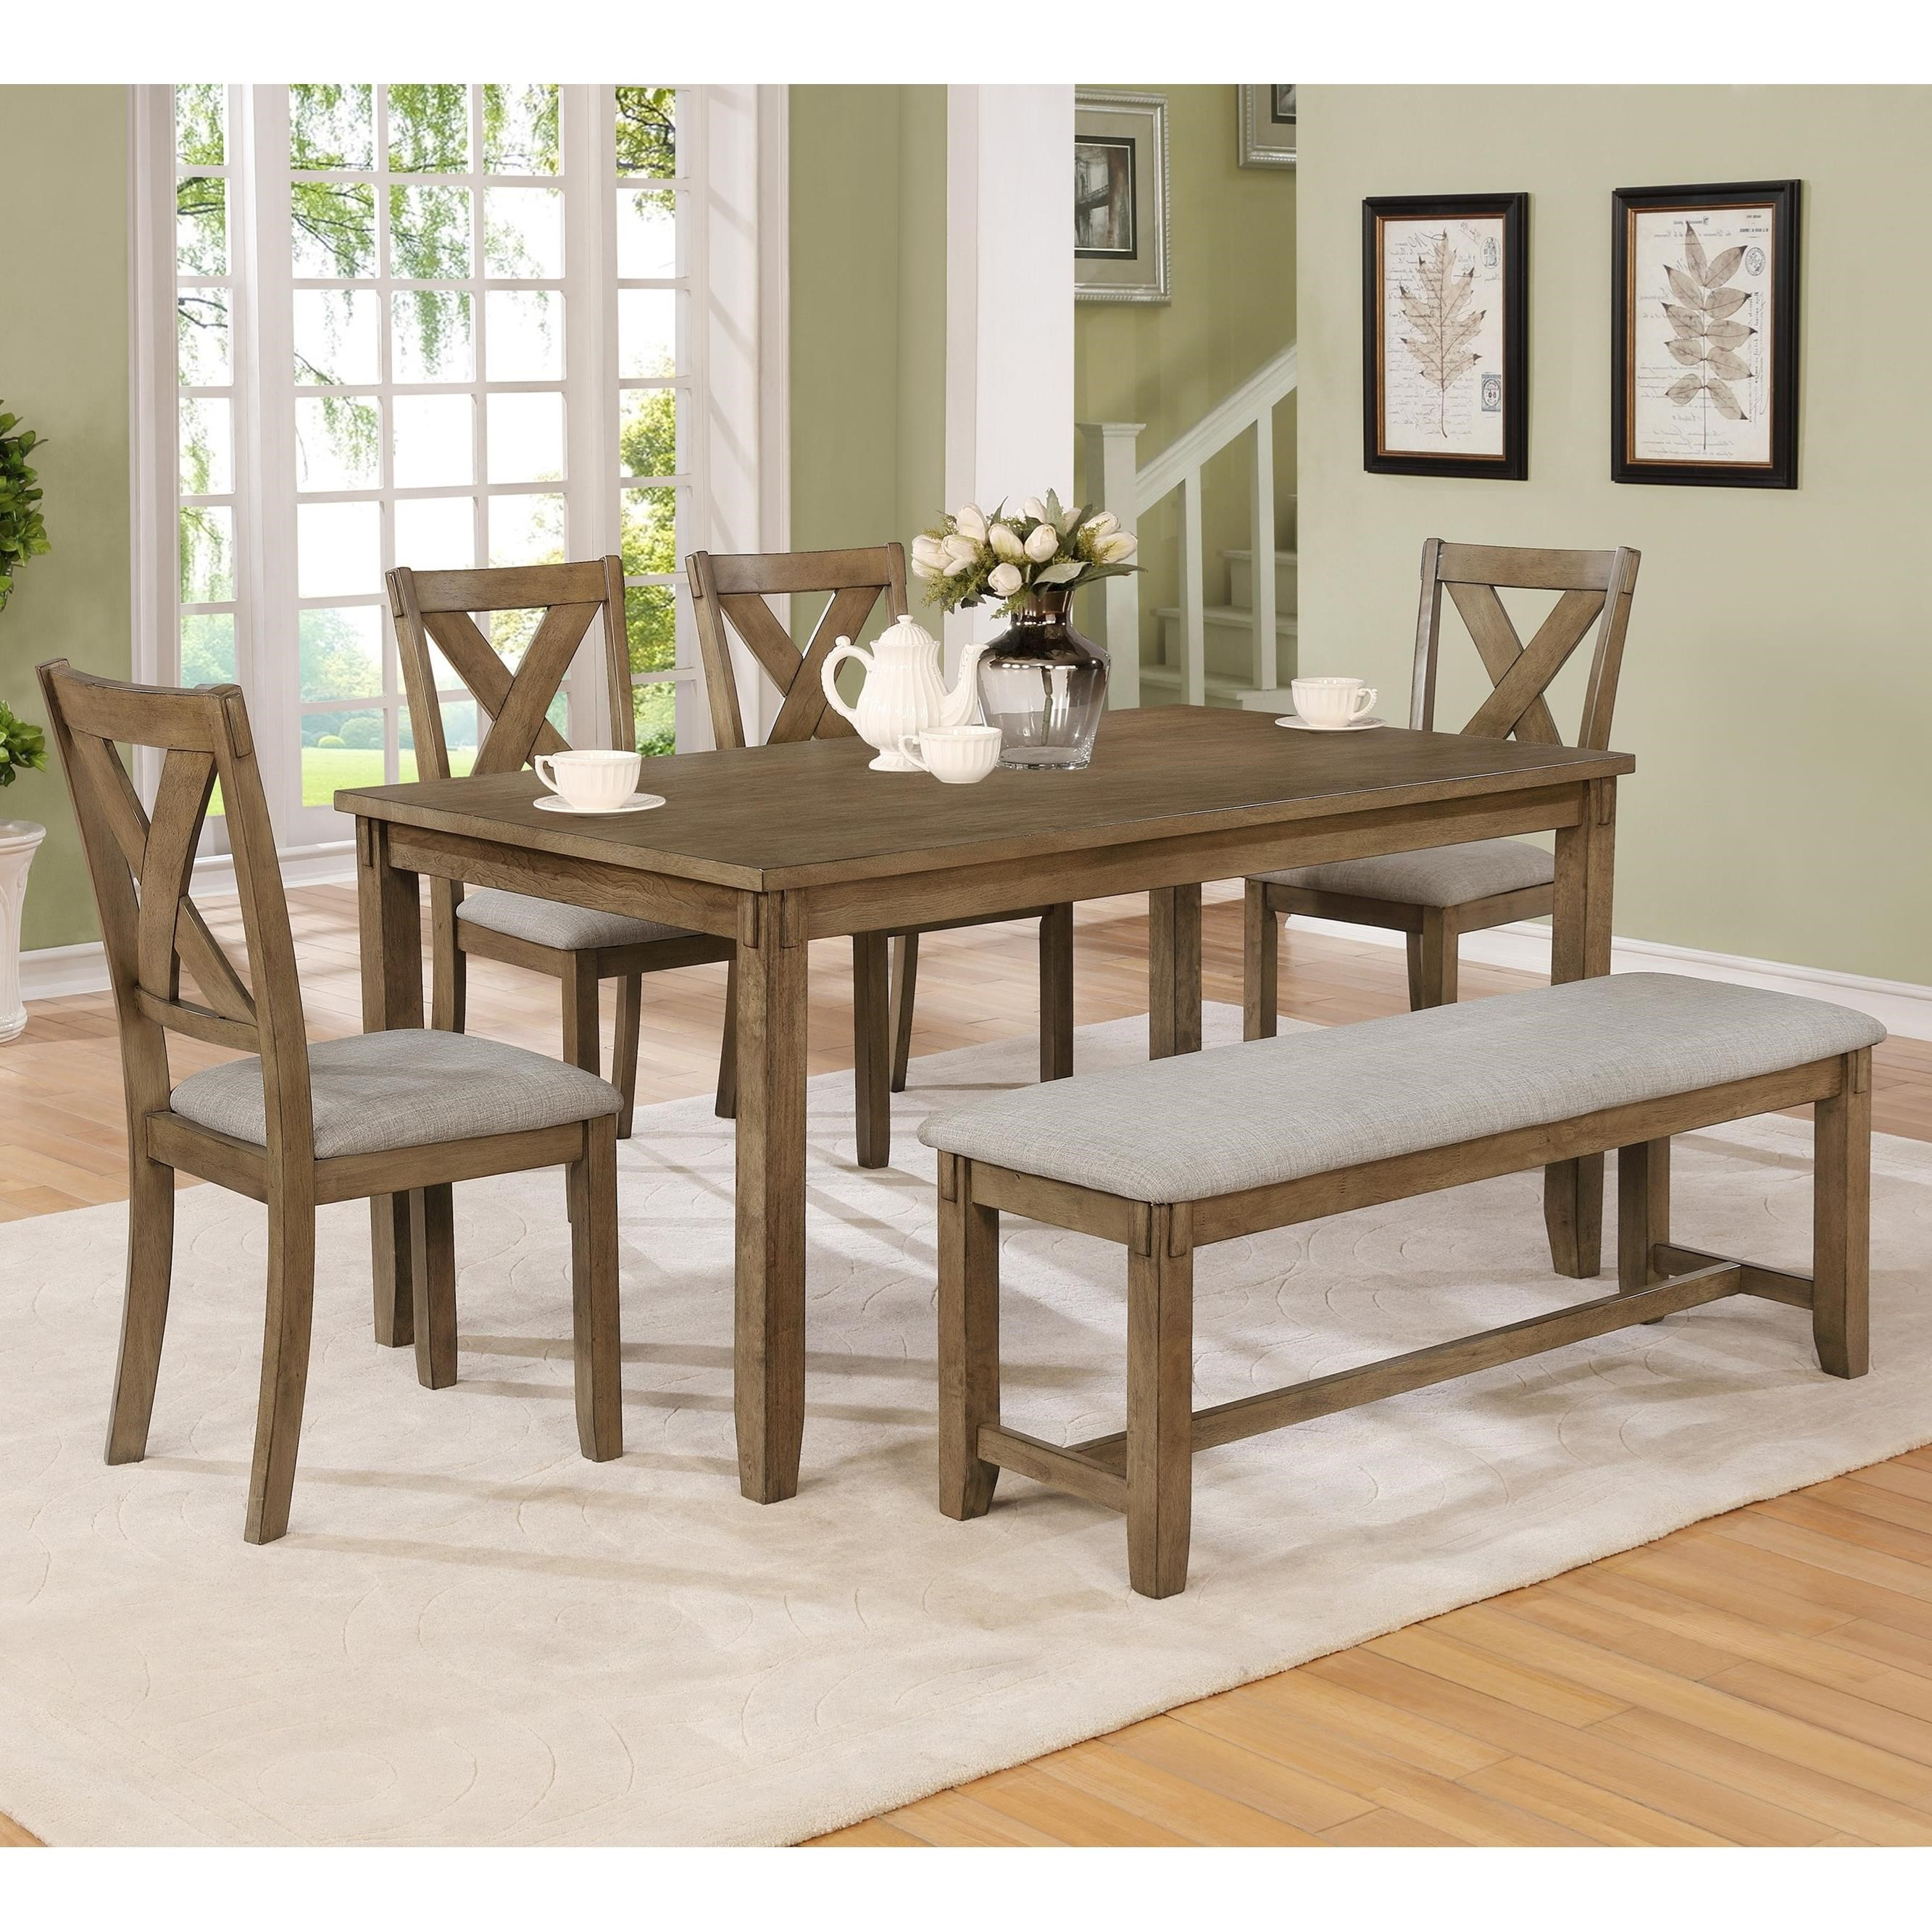 Clara 6 Piece Table and Chairs Set by Crown Mark at Darvin Furniture